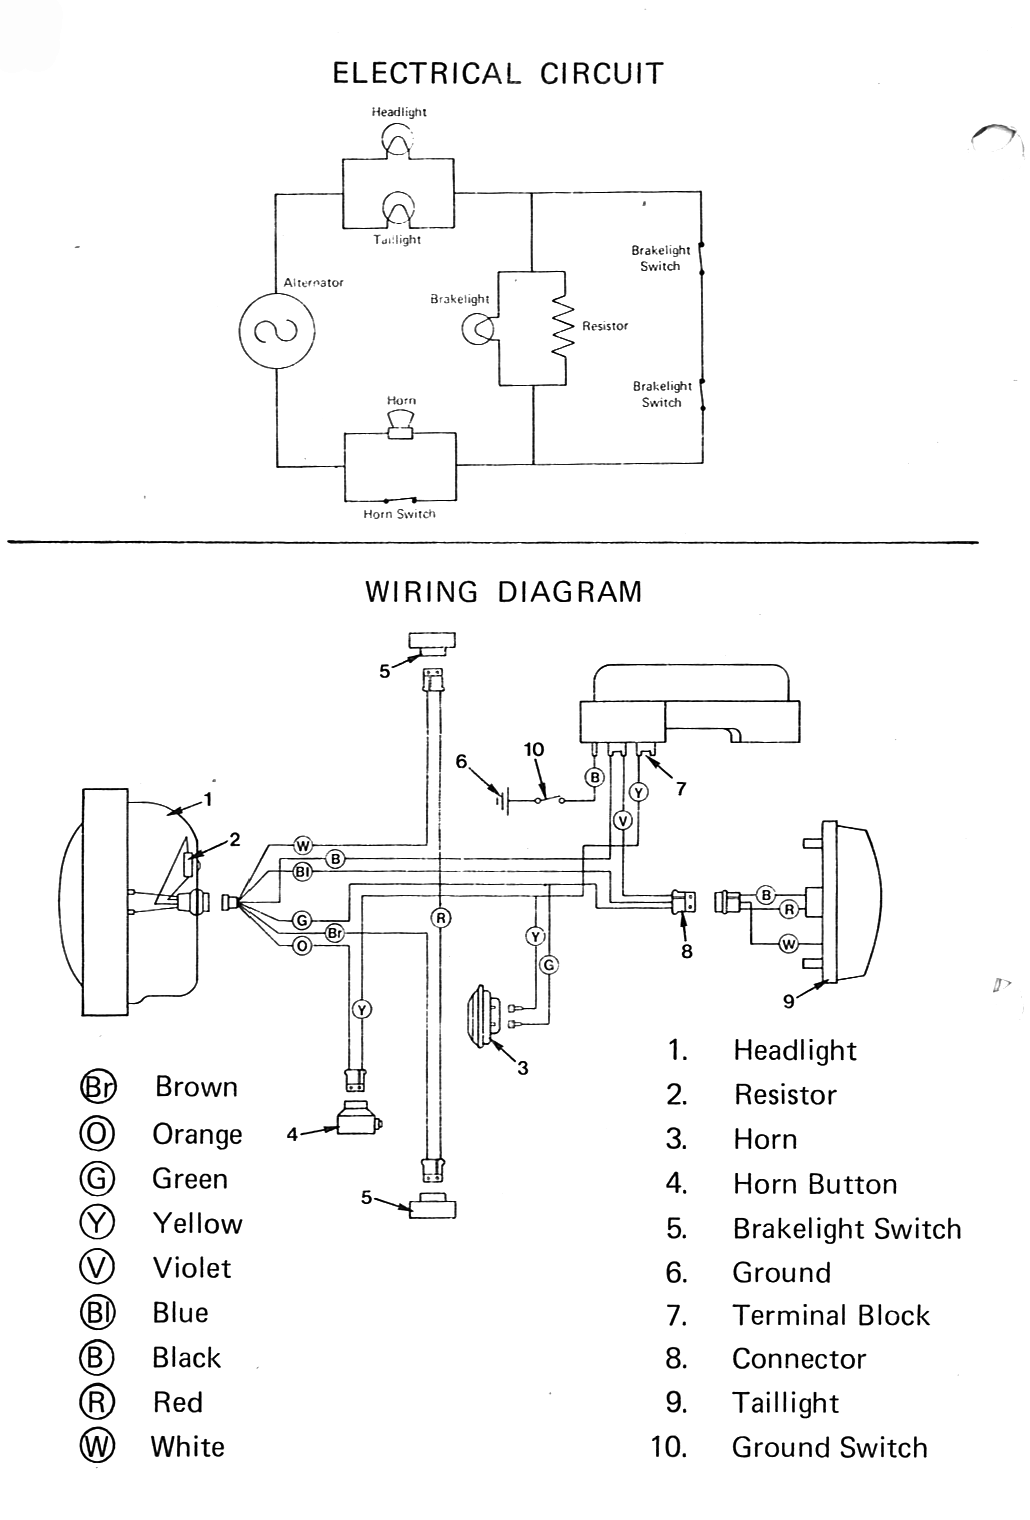 Yamaha Vino Wiring Diagram Schematics Fz6r List Of Diagrams Moped Wiki Xs1100